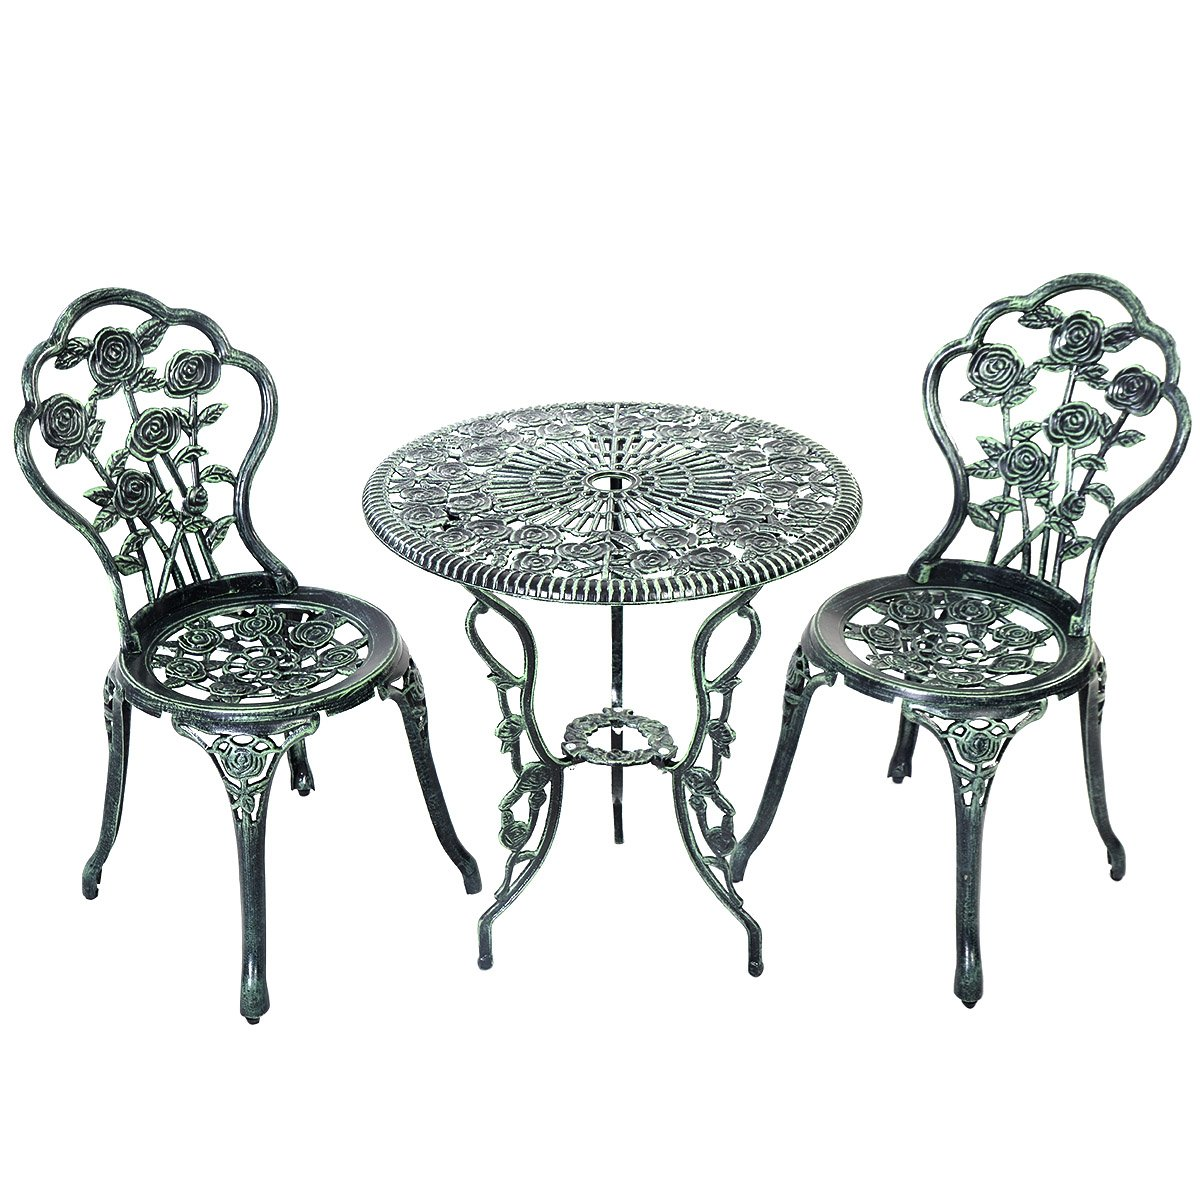 Giantex Patio Furniture Cast Aluminum Rose Design Bistro